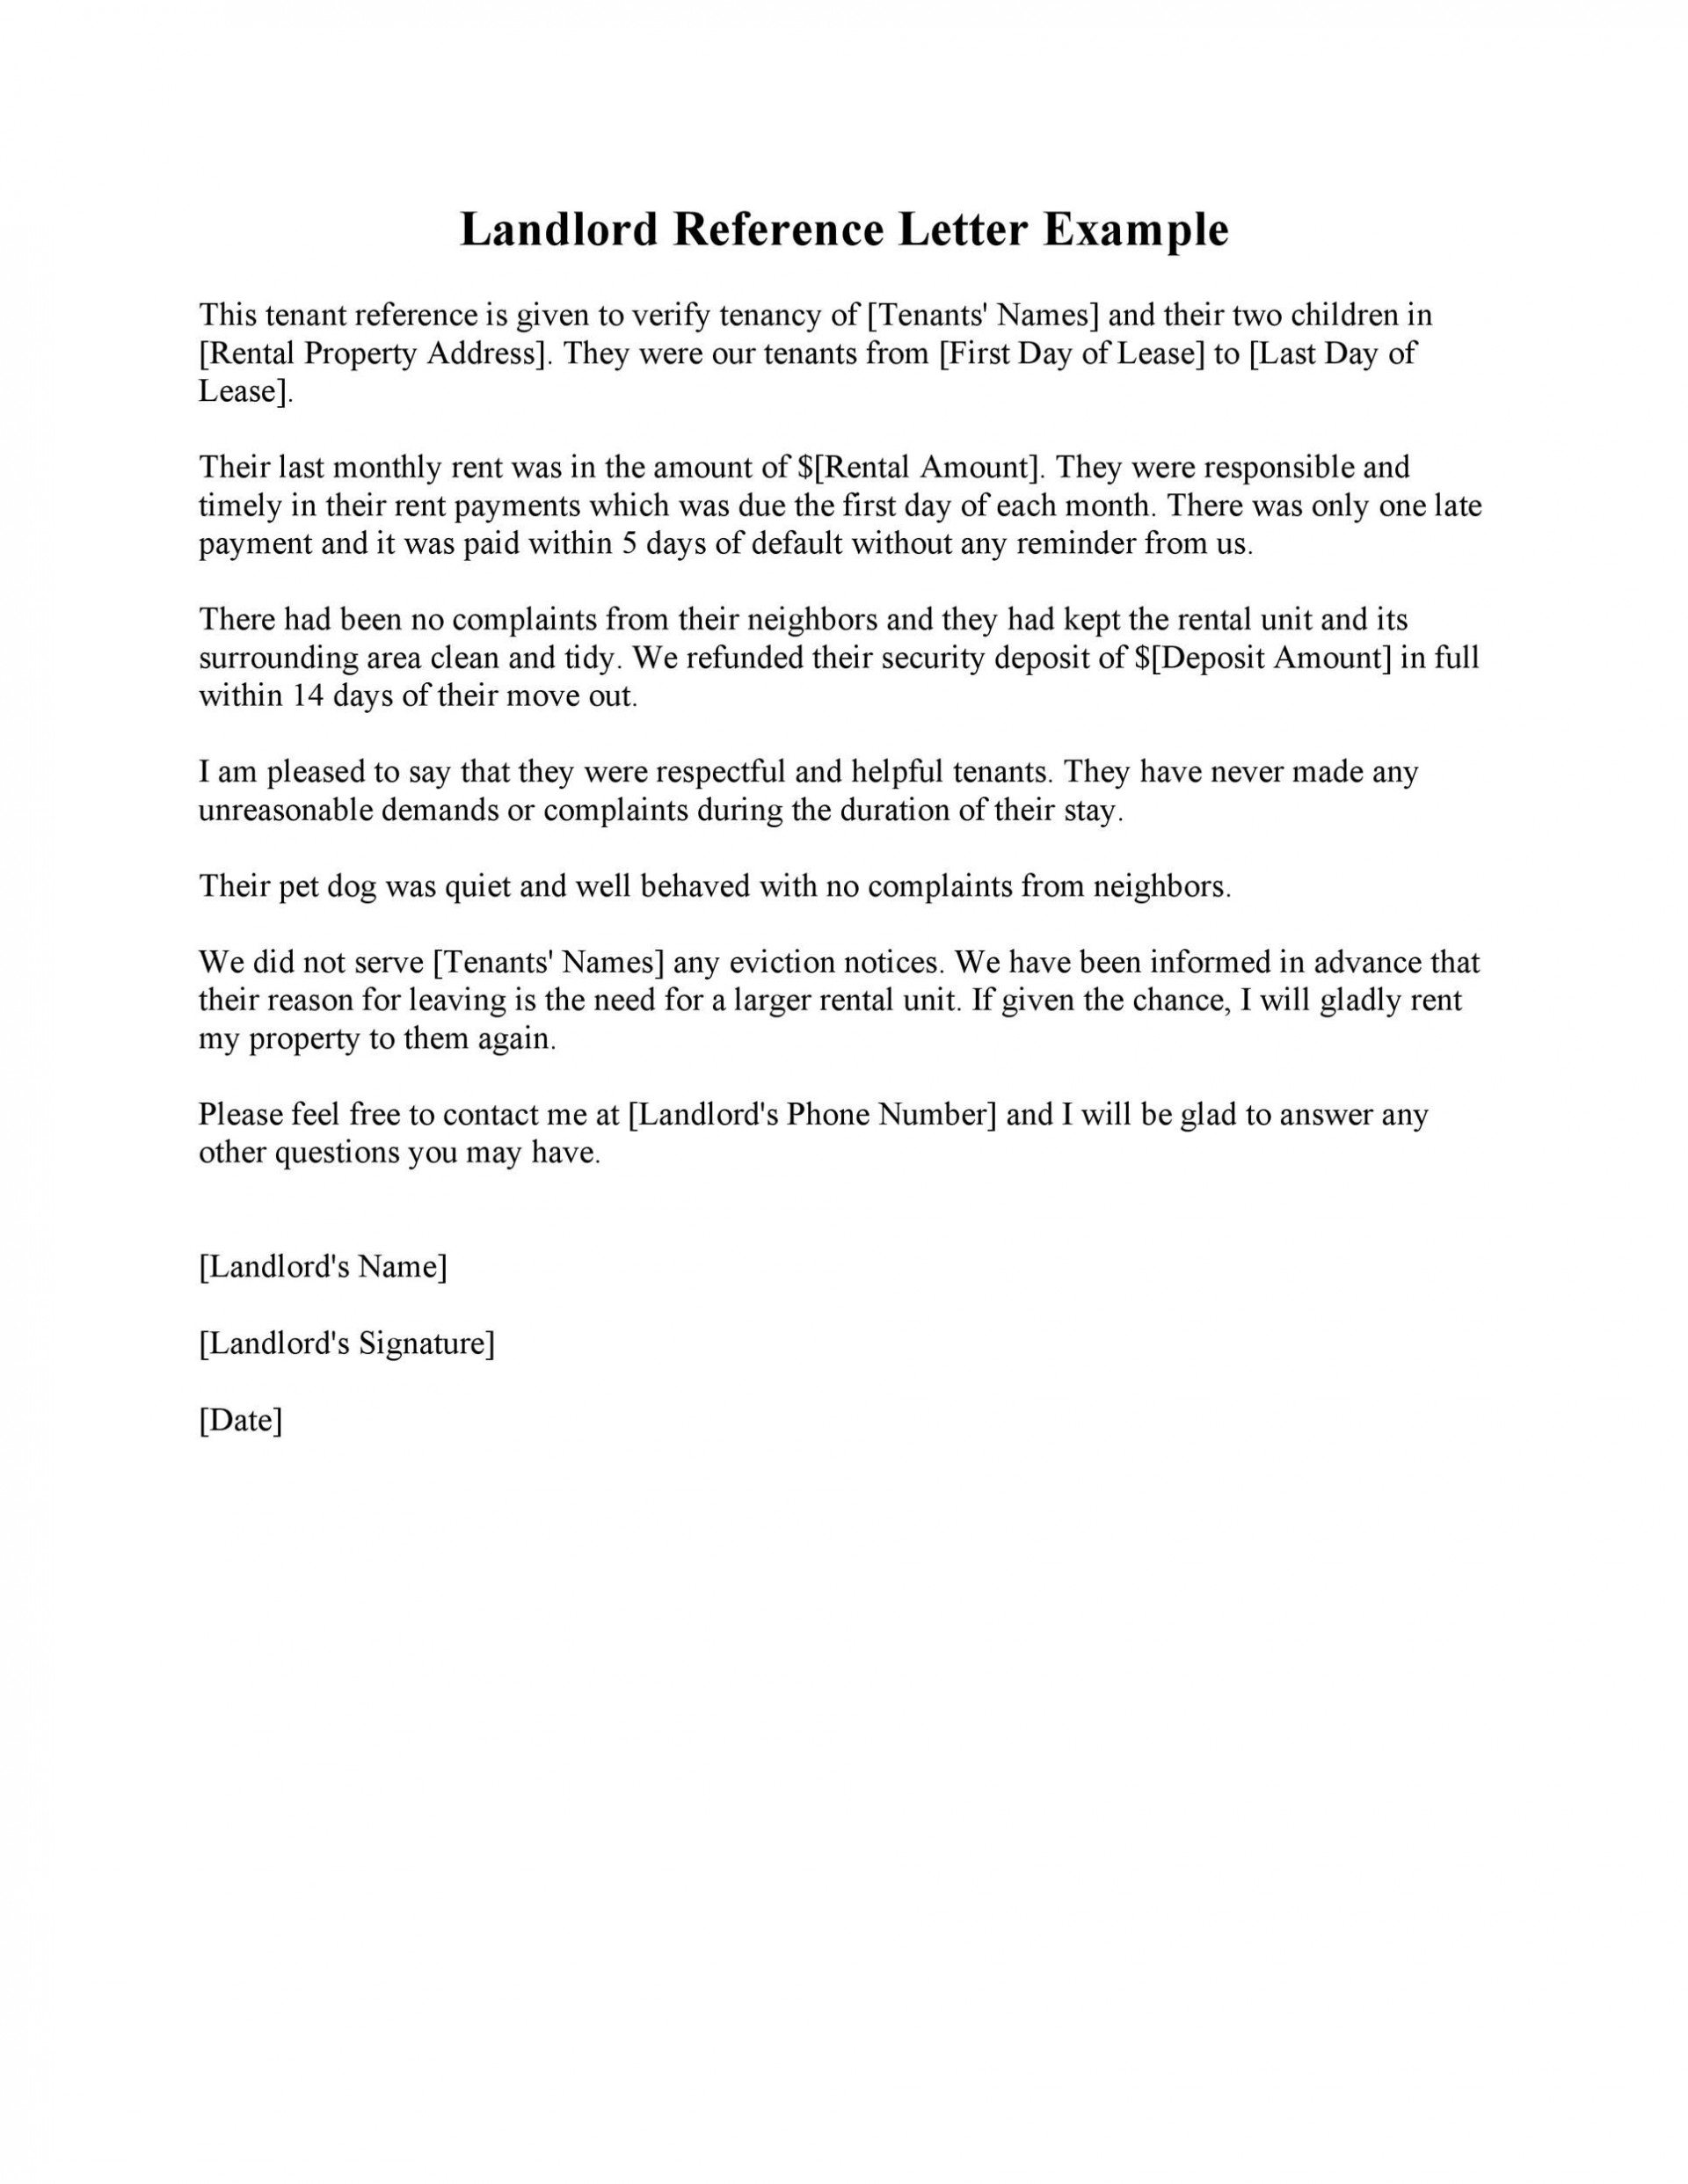 002 Magnificent Free Reference Letter Template For Tenant Image 1920